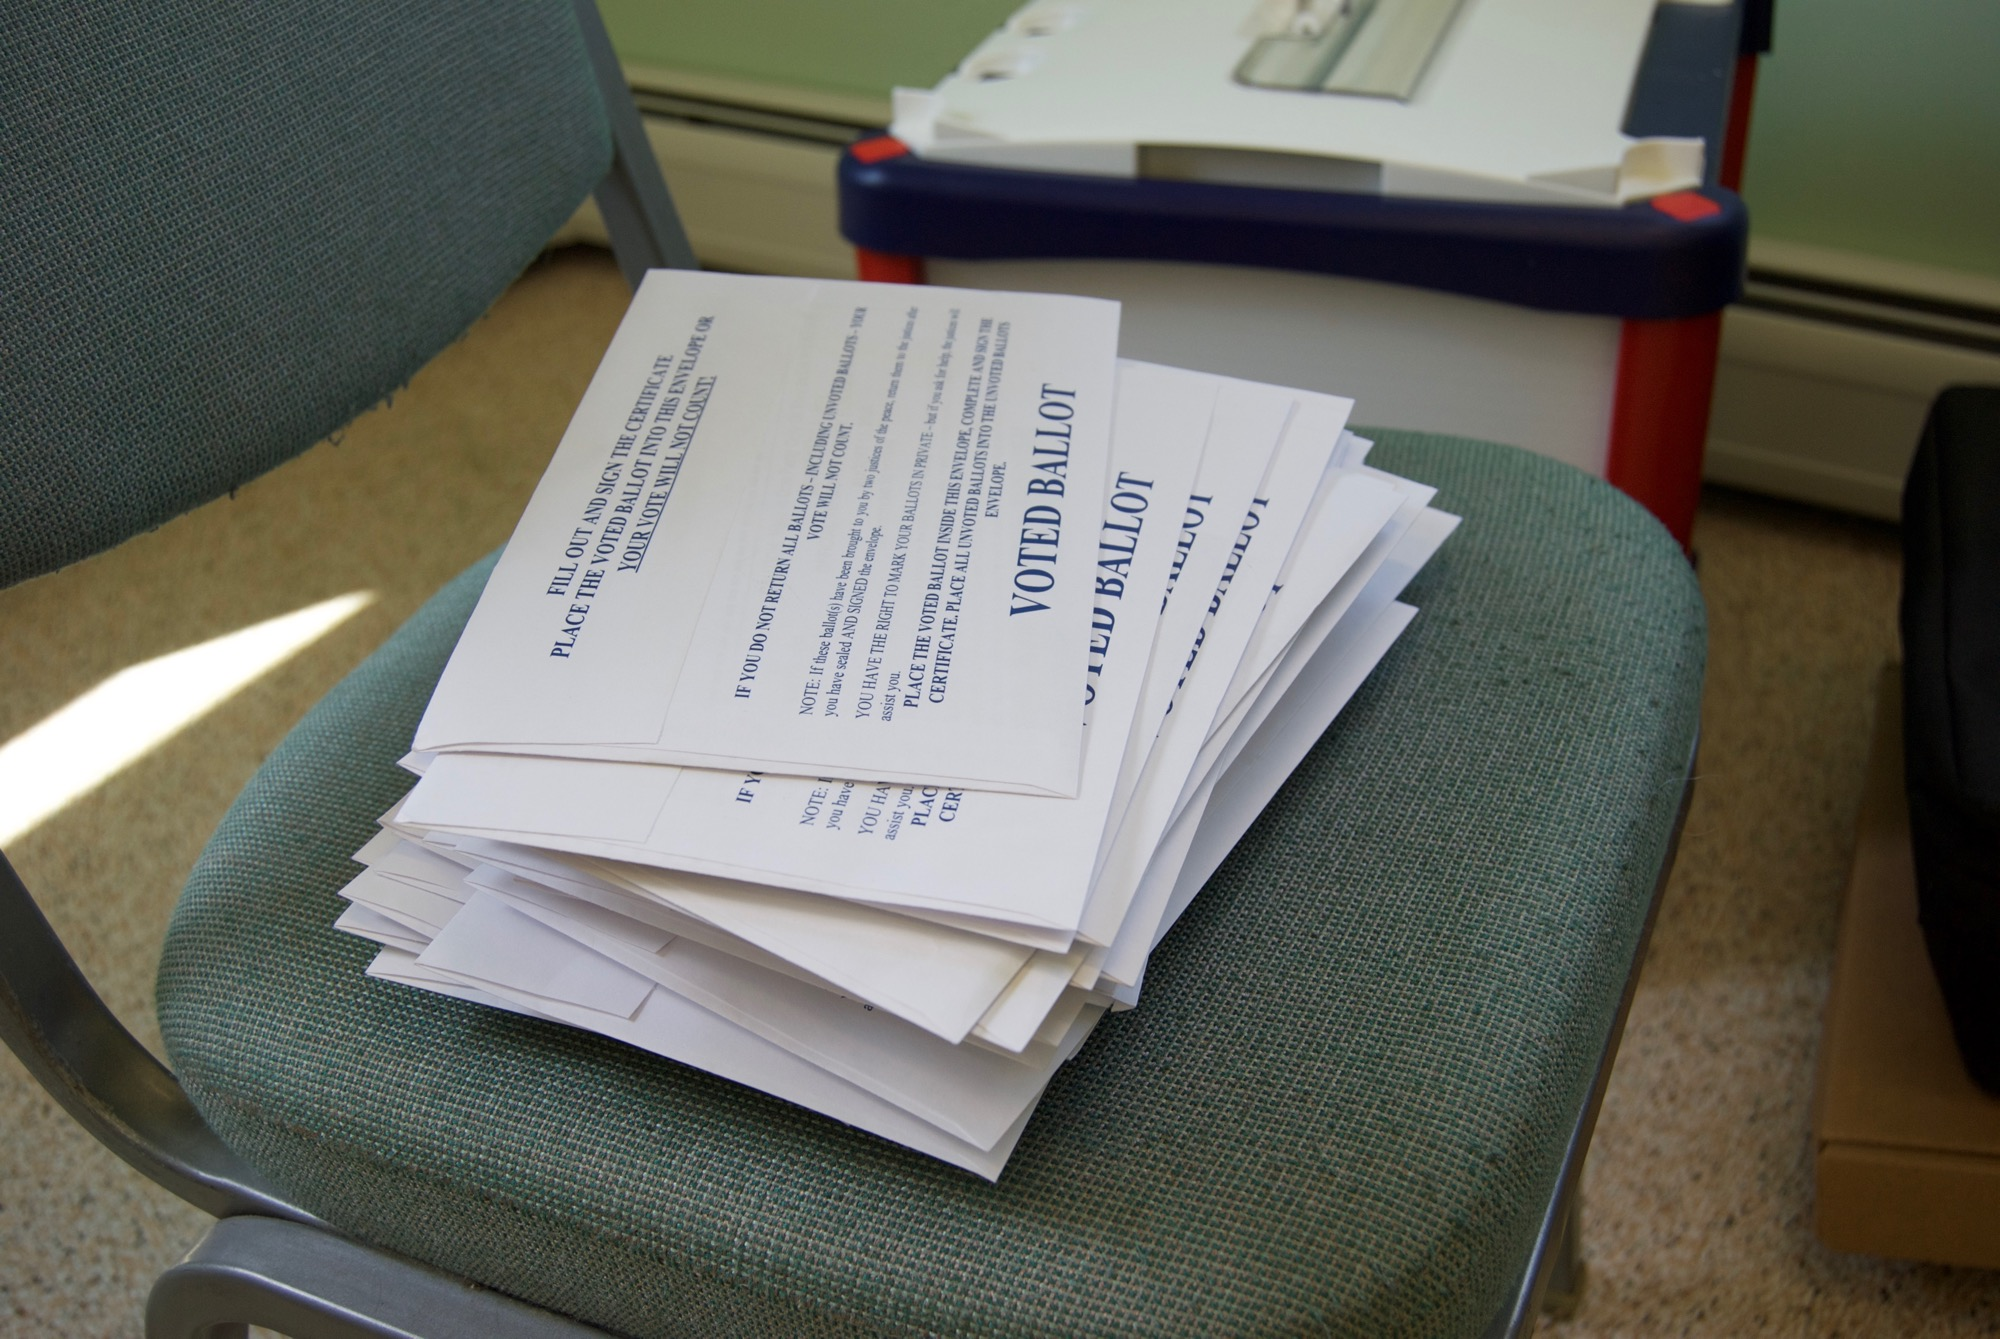 Primary ballots wait to be counted at a polling place in Sunderland's town office Tuesday. Photo by Emma Cotton/VTDigger